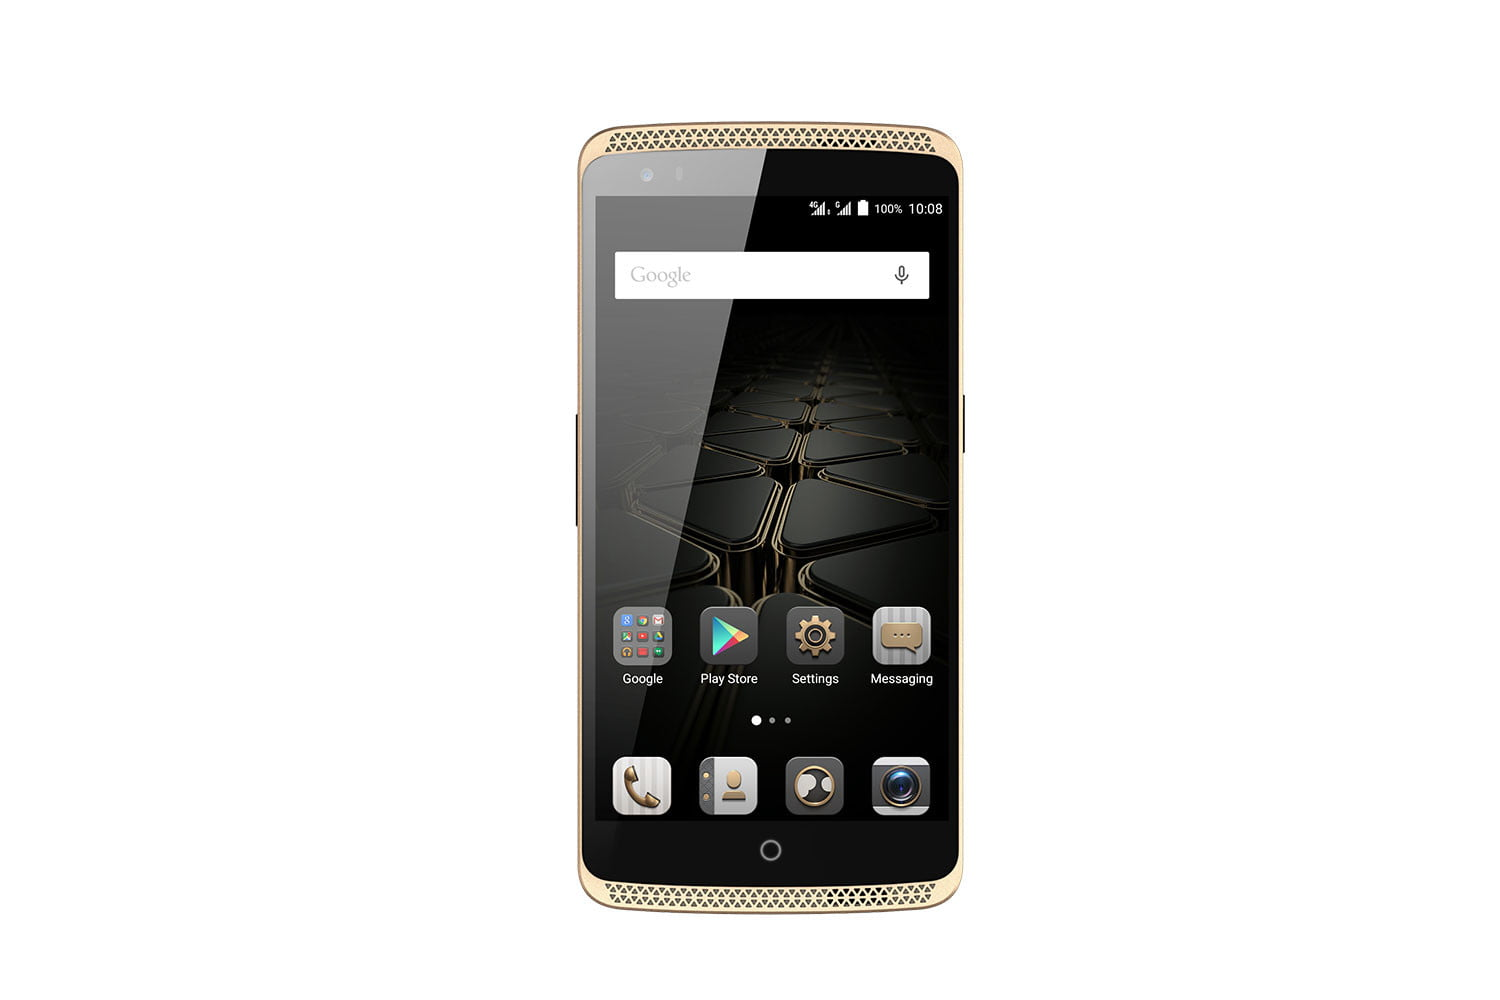 zte axon elite uk have learn this